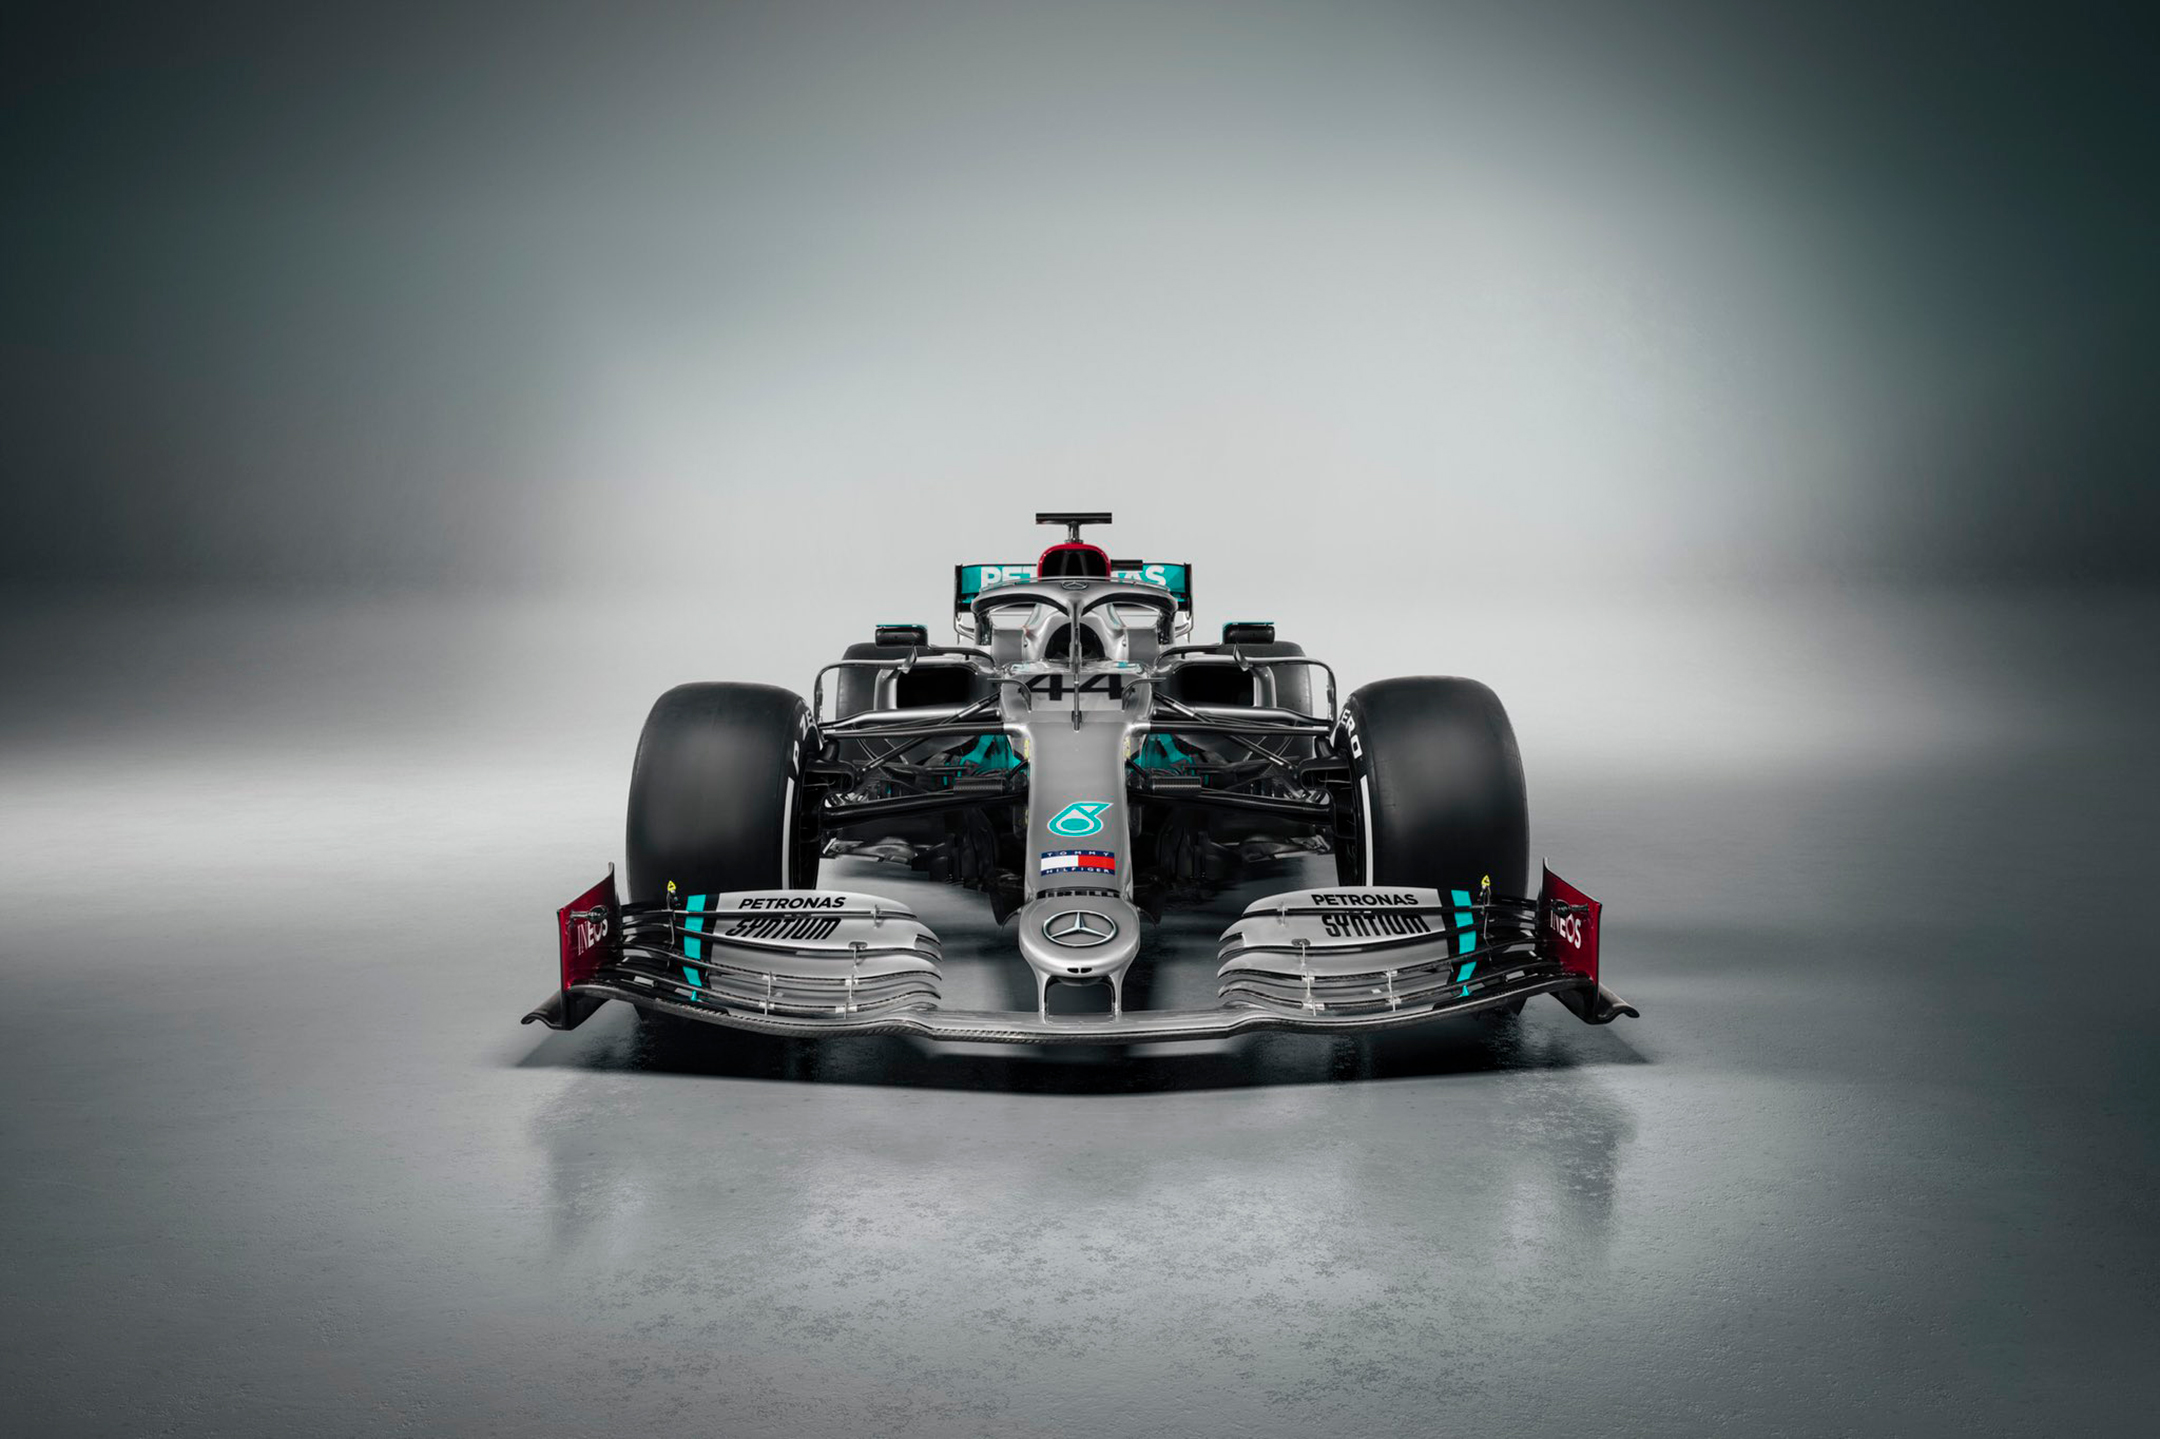 F1 - Mercedes-AMG F1 Team - W11 - 2020 - front-face